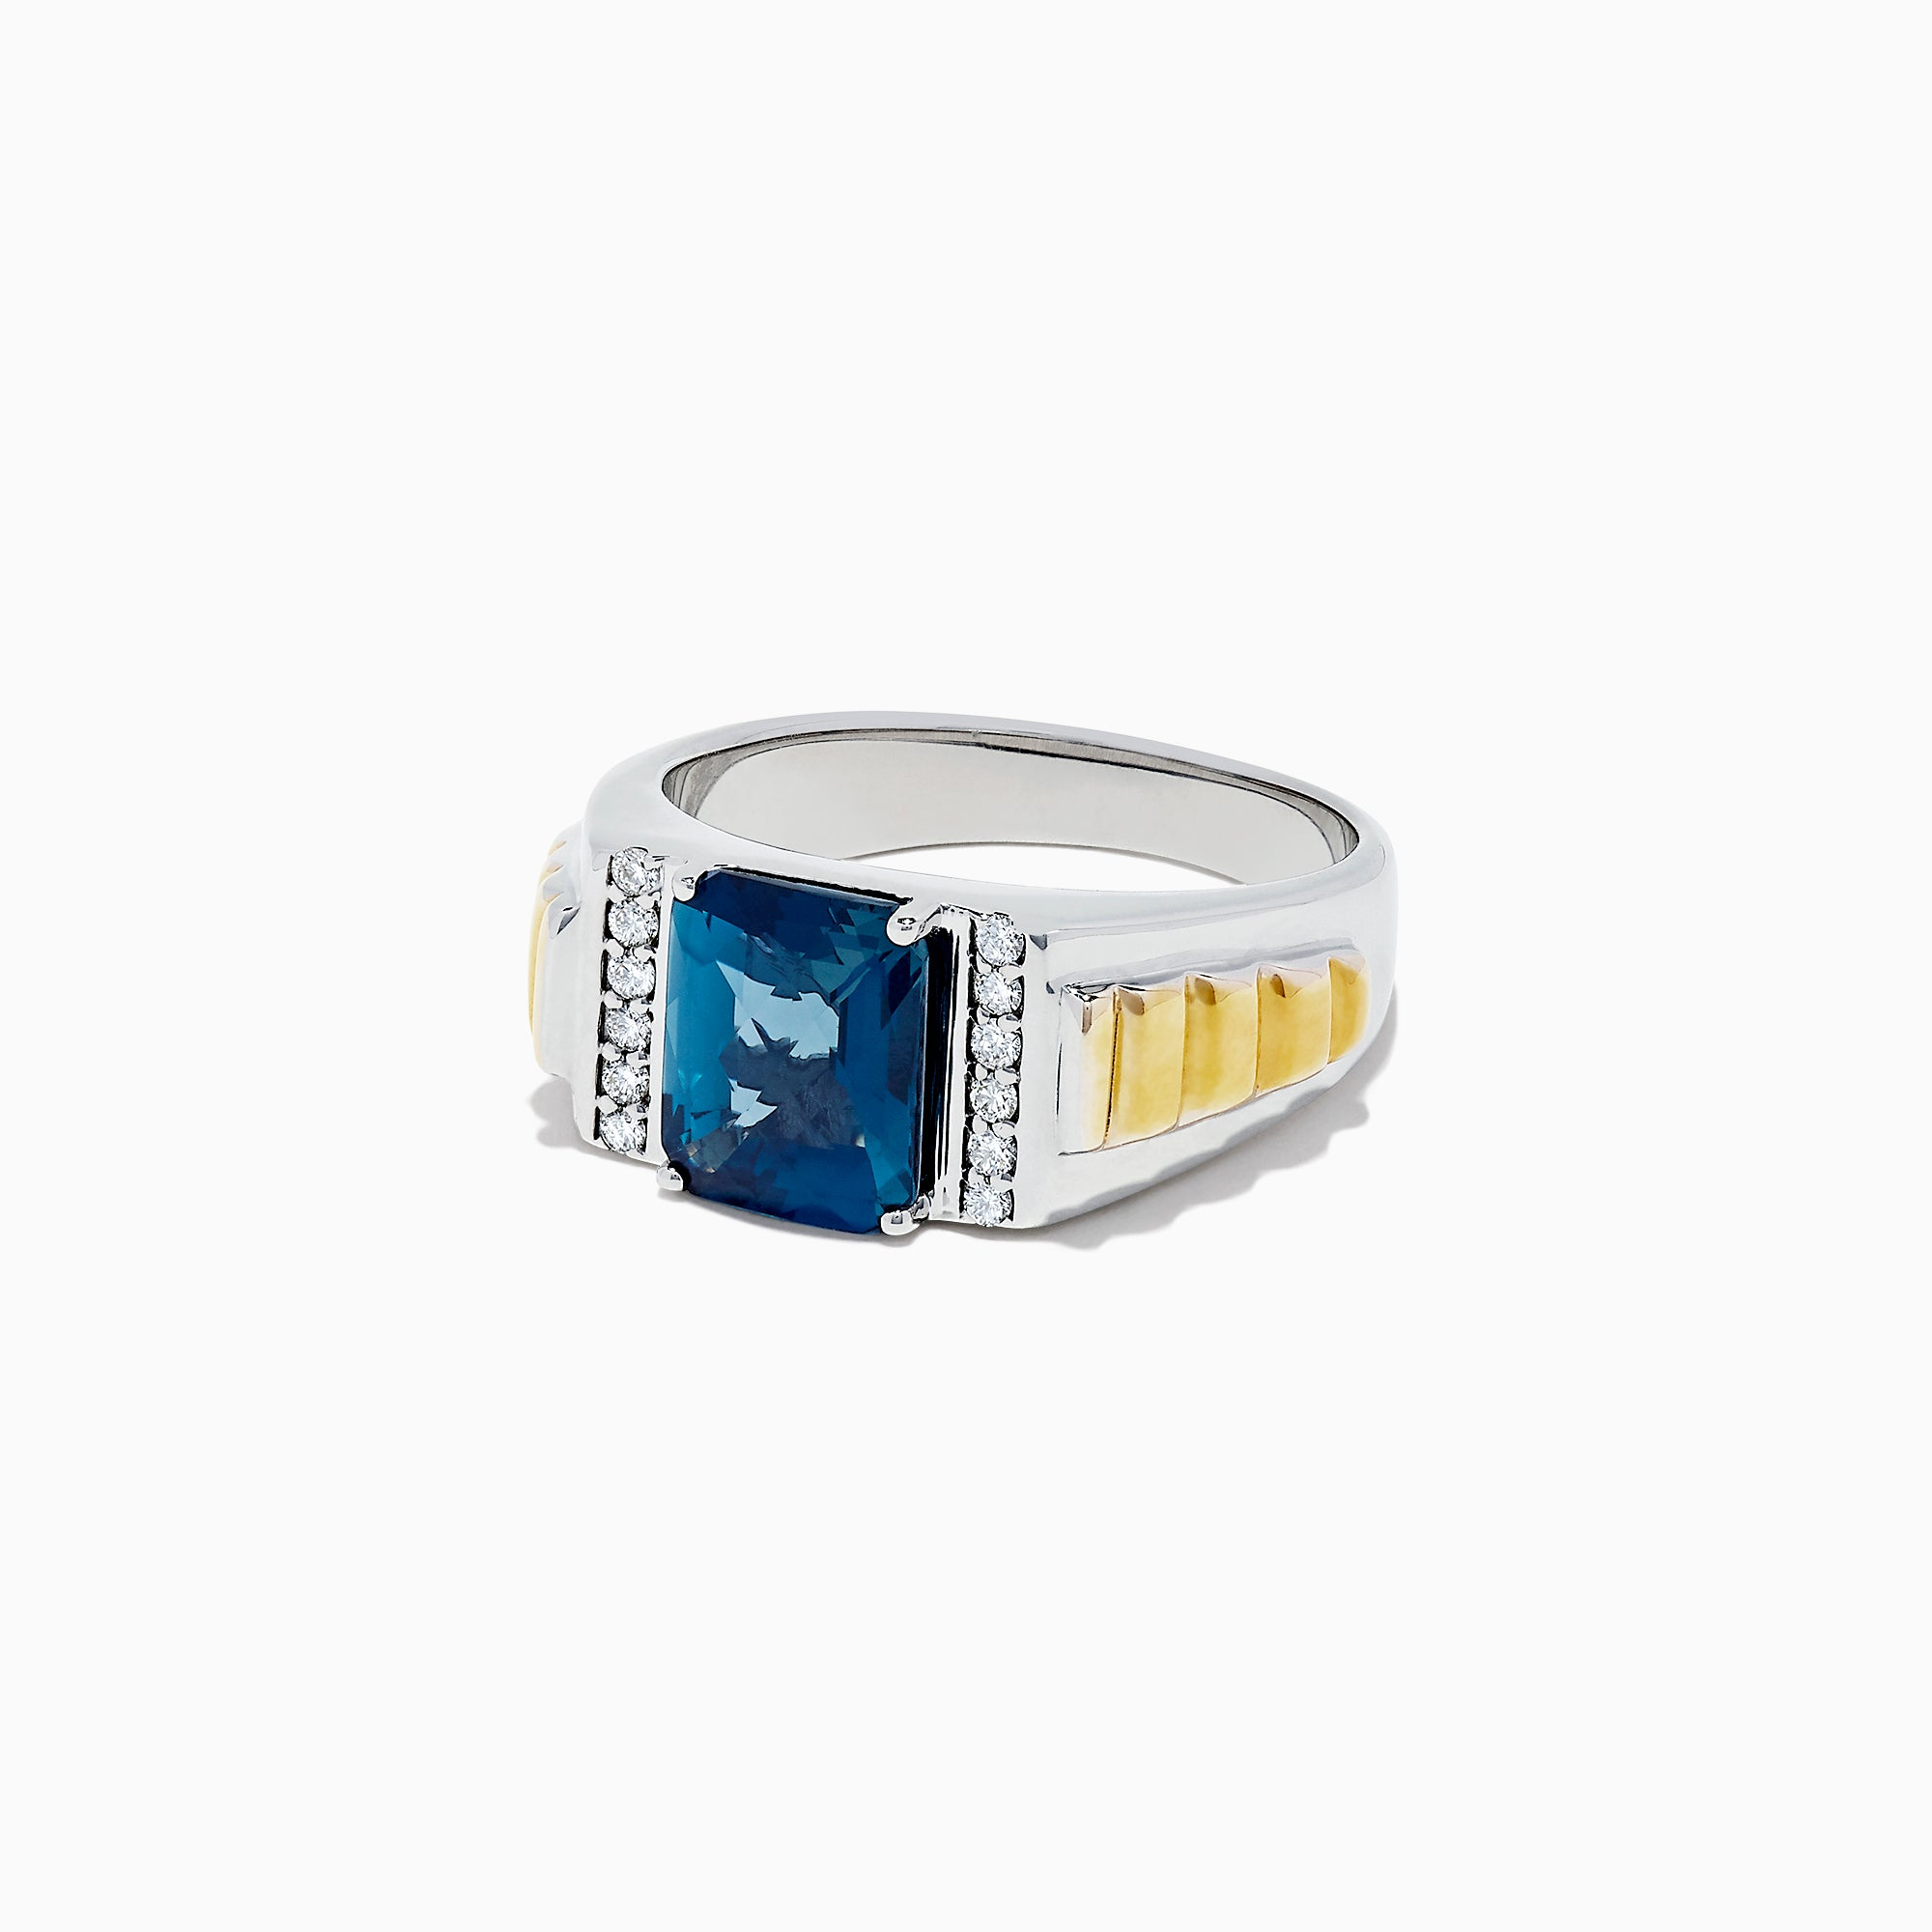 Effy Men's Sterling Silver Blue Topaz and Diamond Ring, 3.79 TCW